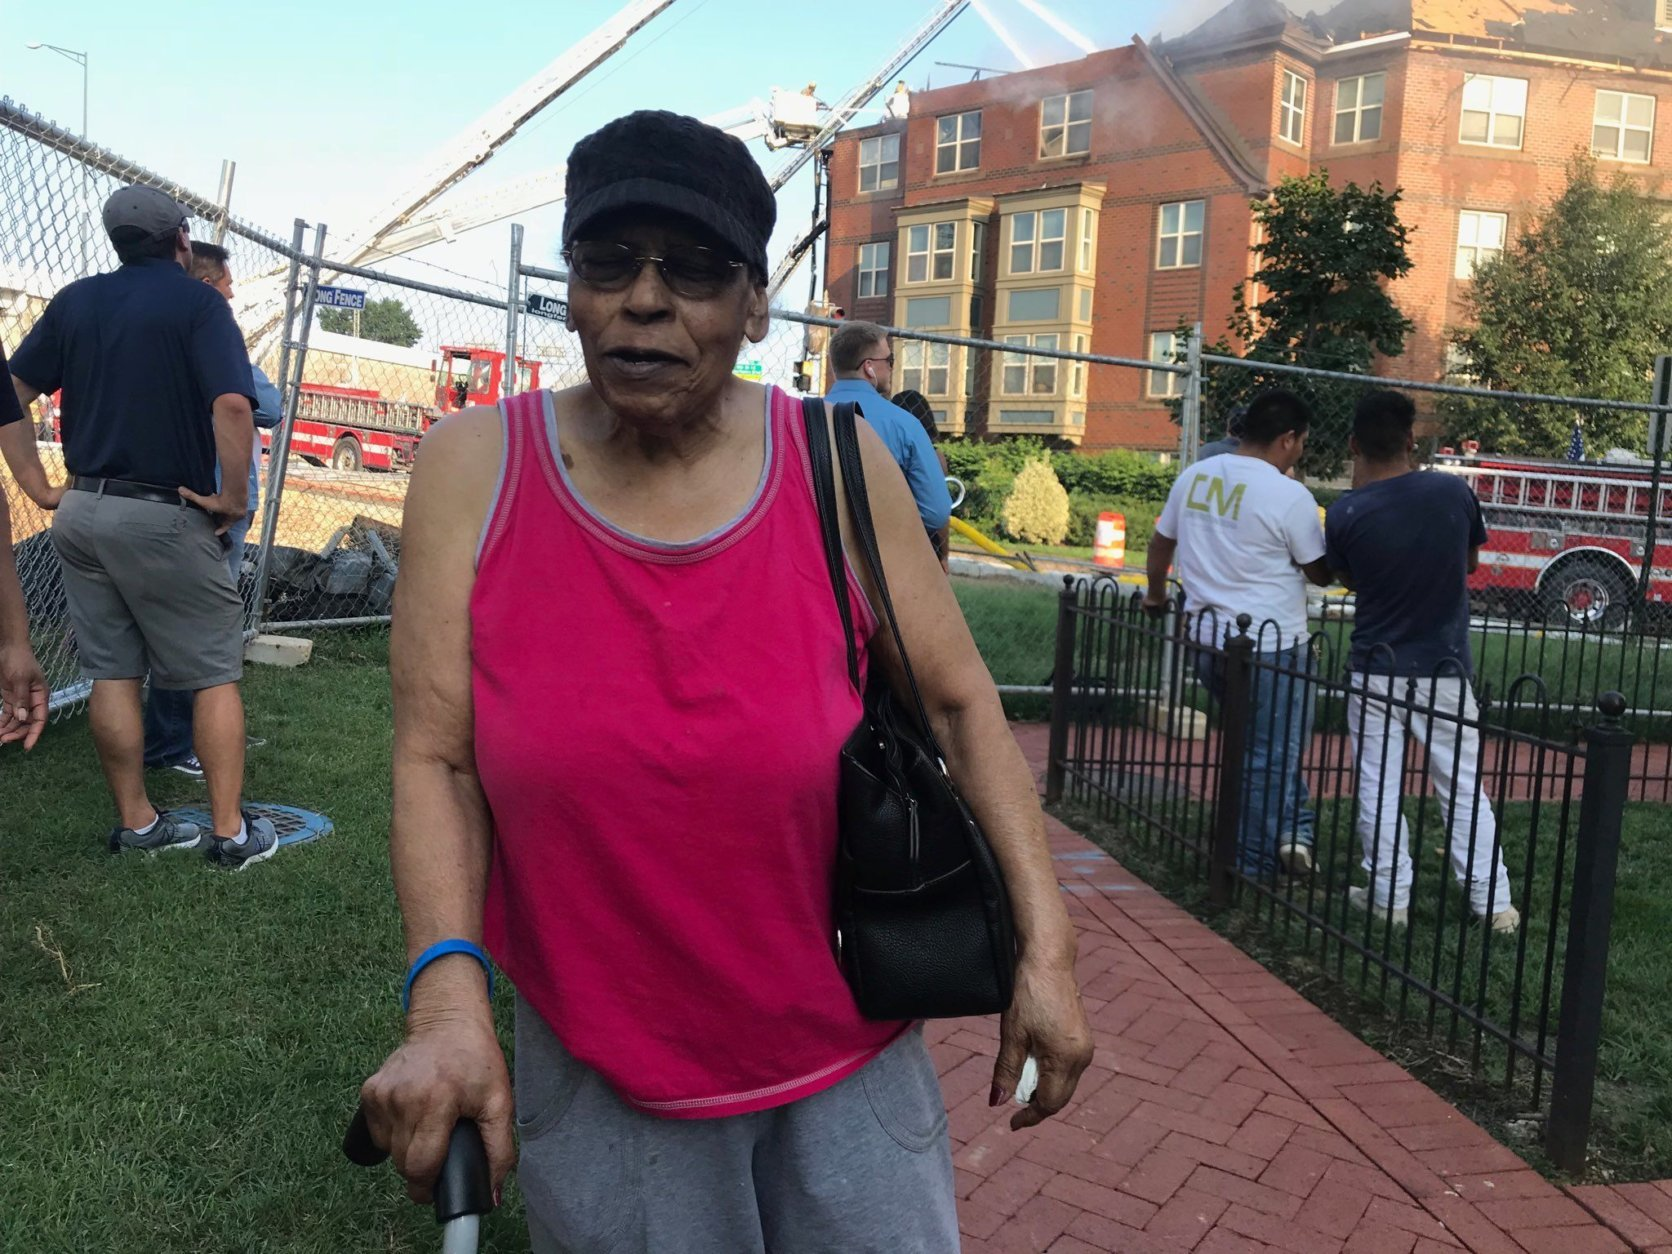 A.V. Jones told WTOP's Dick Uliano that she lives on the second floor of the senior building and never heard a fire alarm go off. (WTOP/Dick Uliano)